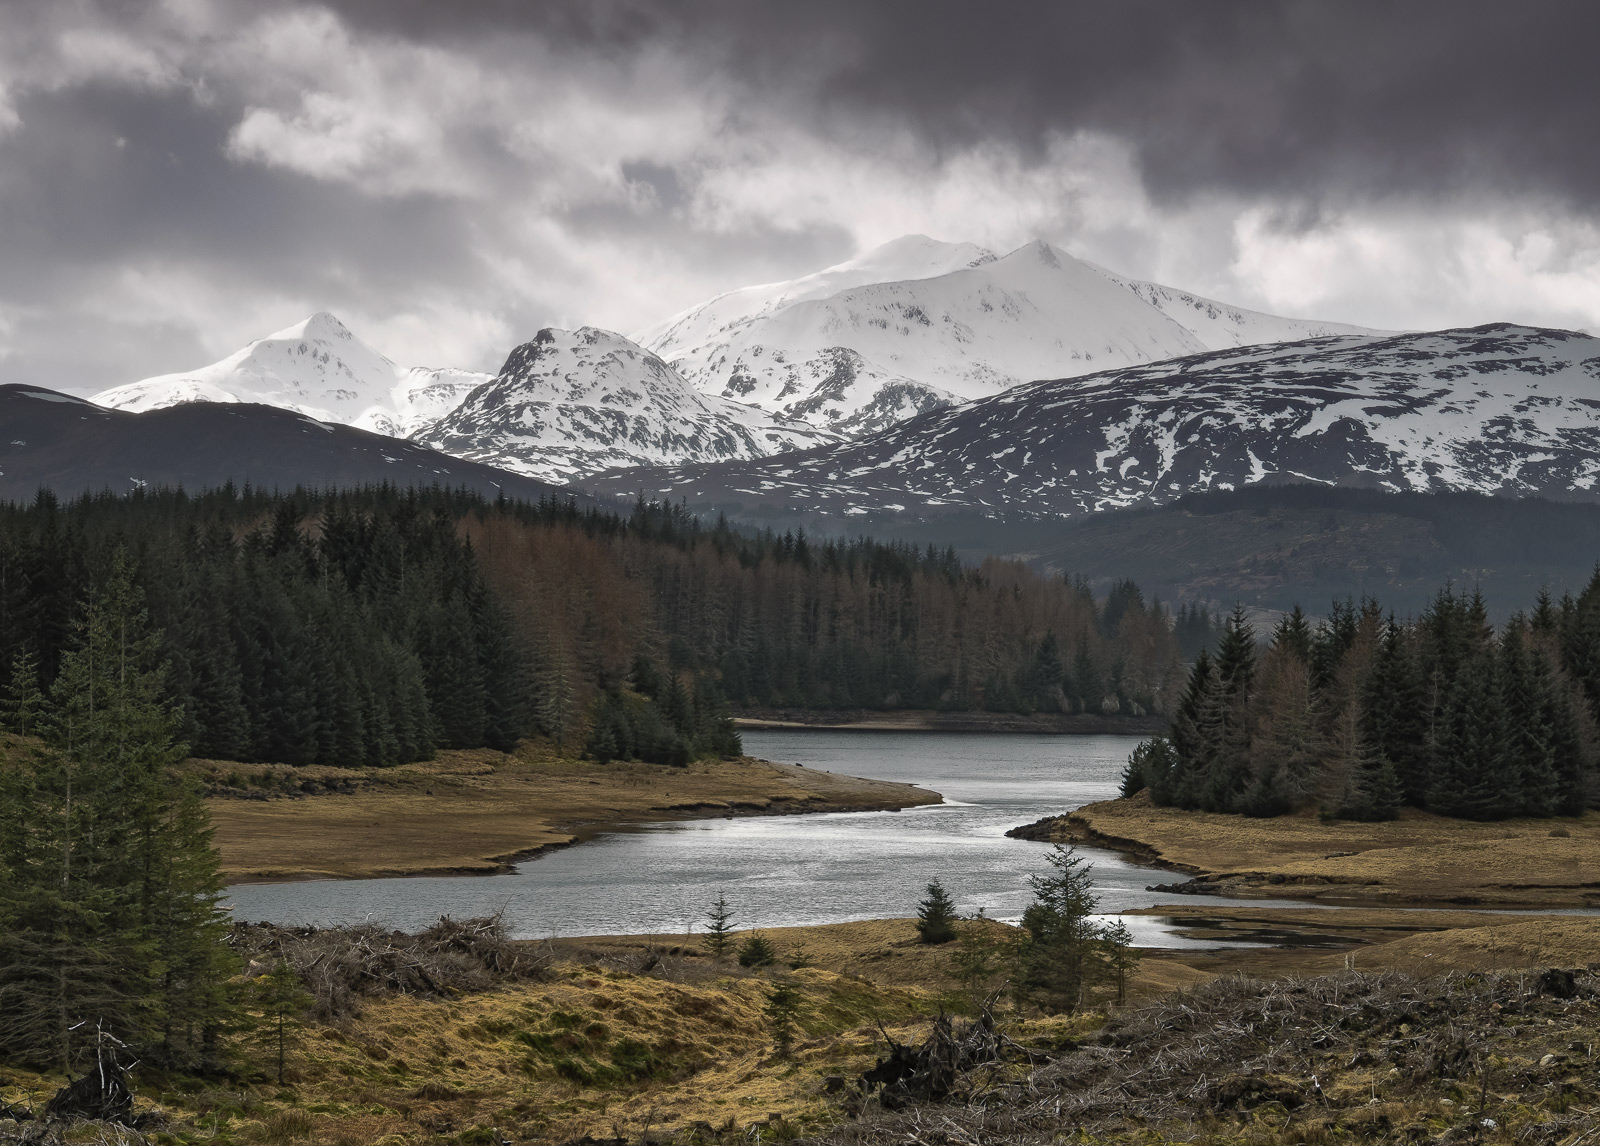 With snow still very apparent on the higher peaks I decided to take a wander out past Loch Laggan towards Glen Spean and...